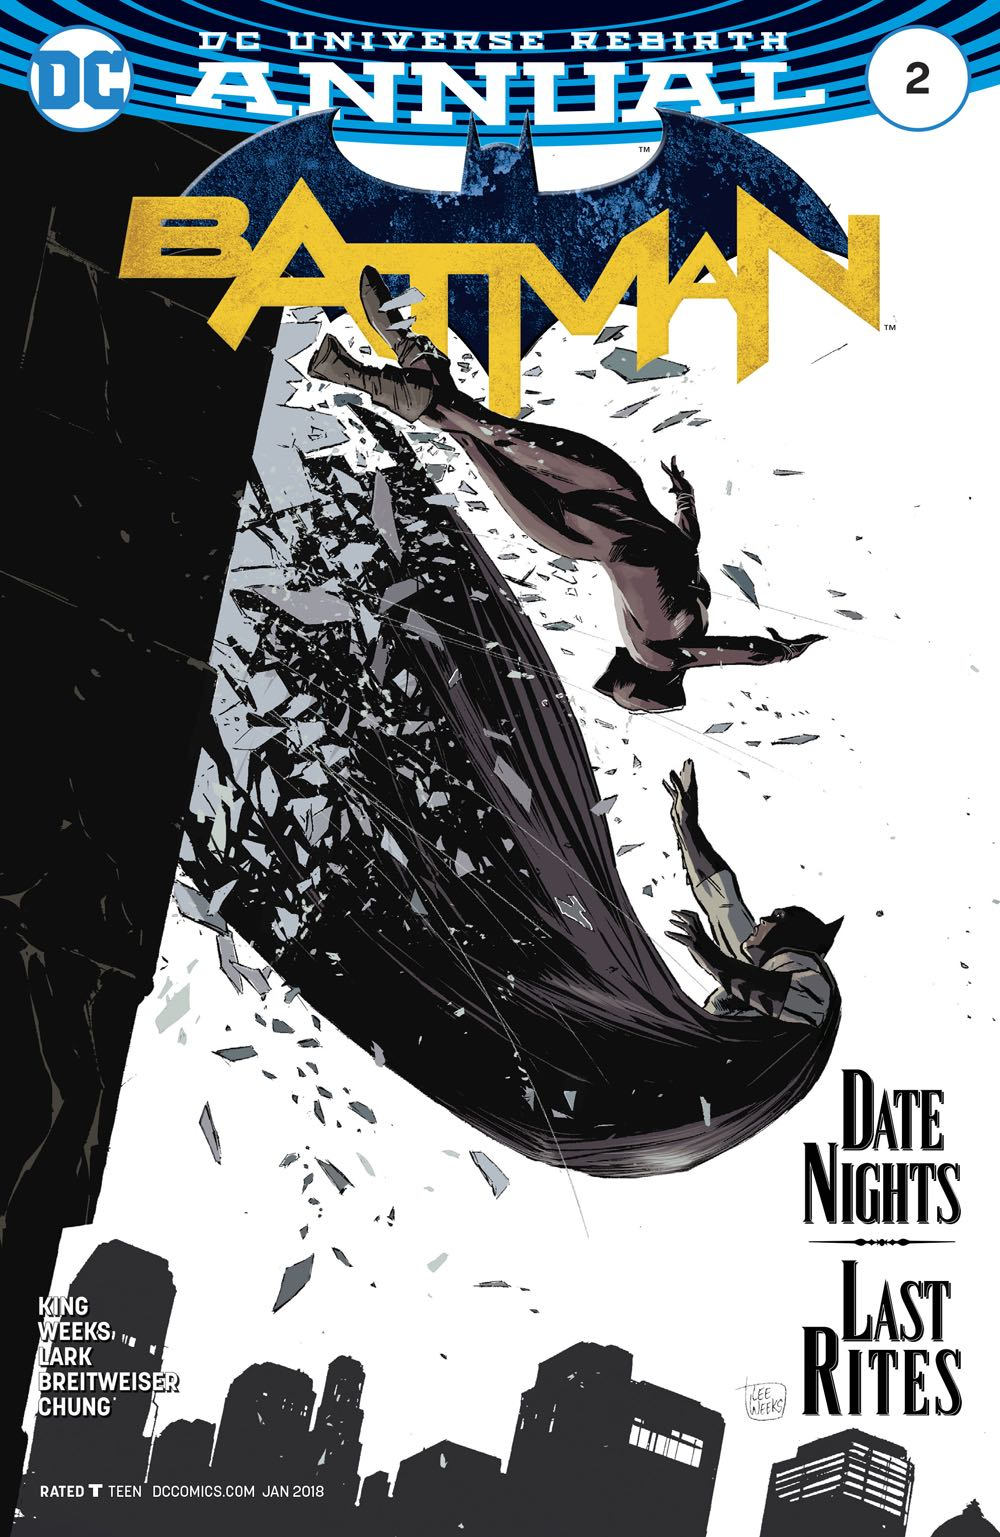 Episode 13 Cover of the Week! - (DC) Batman Annual #2Cover by Lee WeeksWritten by Tom KingIllustrated by Lee WeeksDid the Content Match the Drapes? - YES!